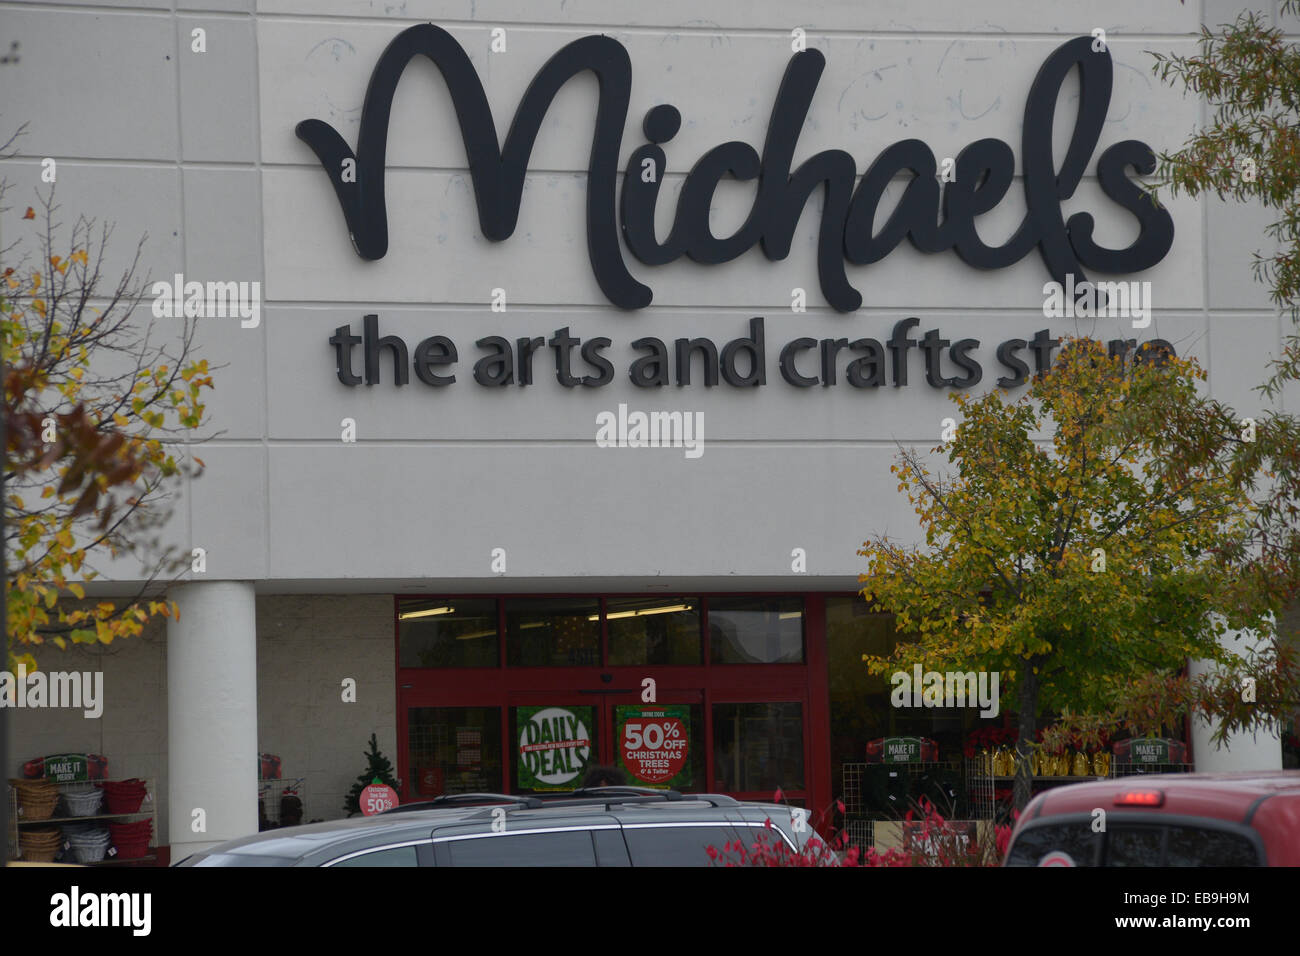 Michaels Arts and Craft Store in Bowie, Md - Stock Image